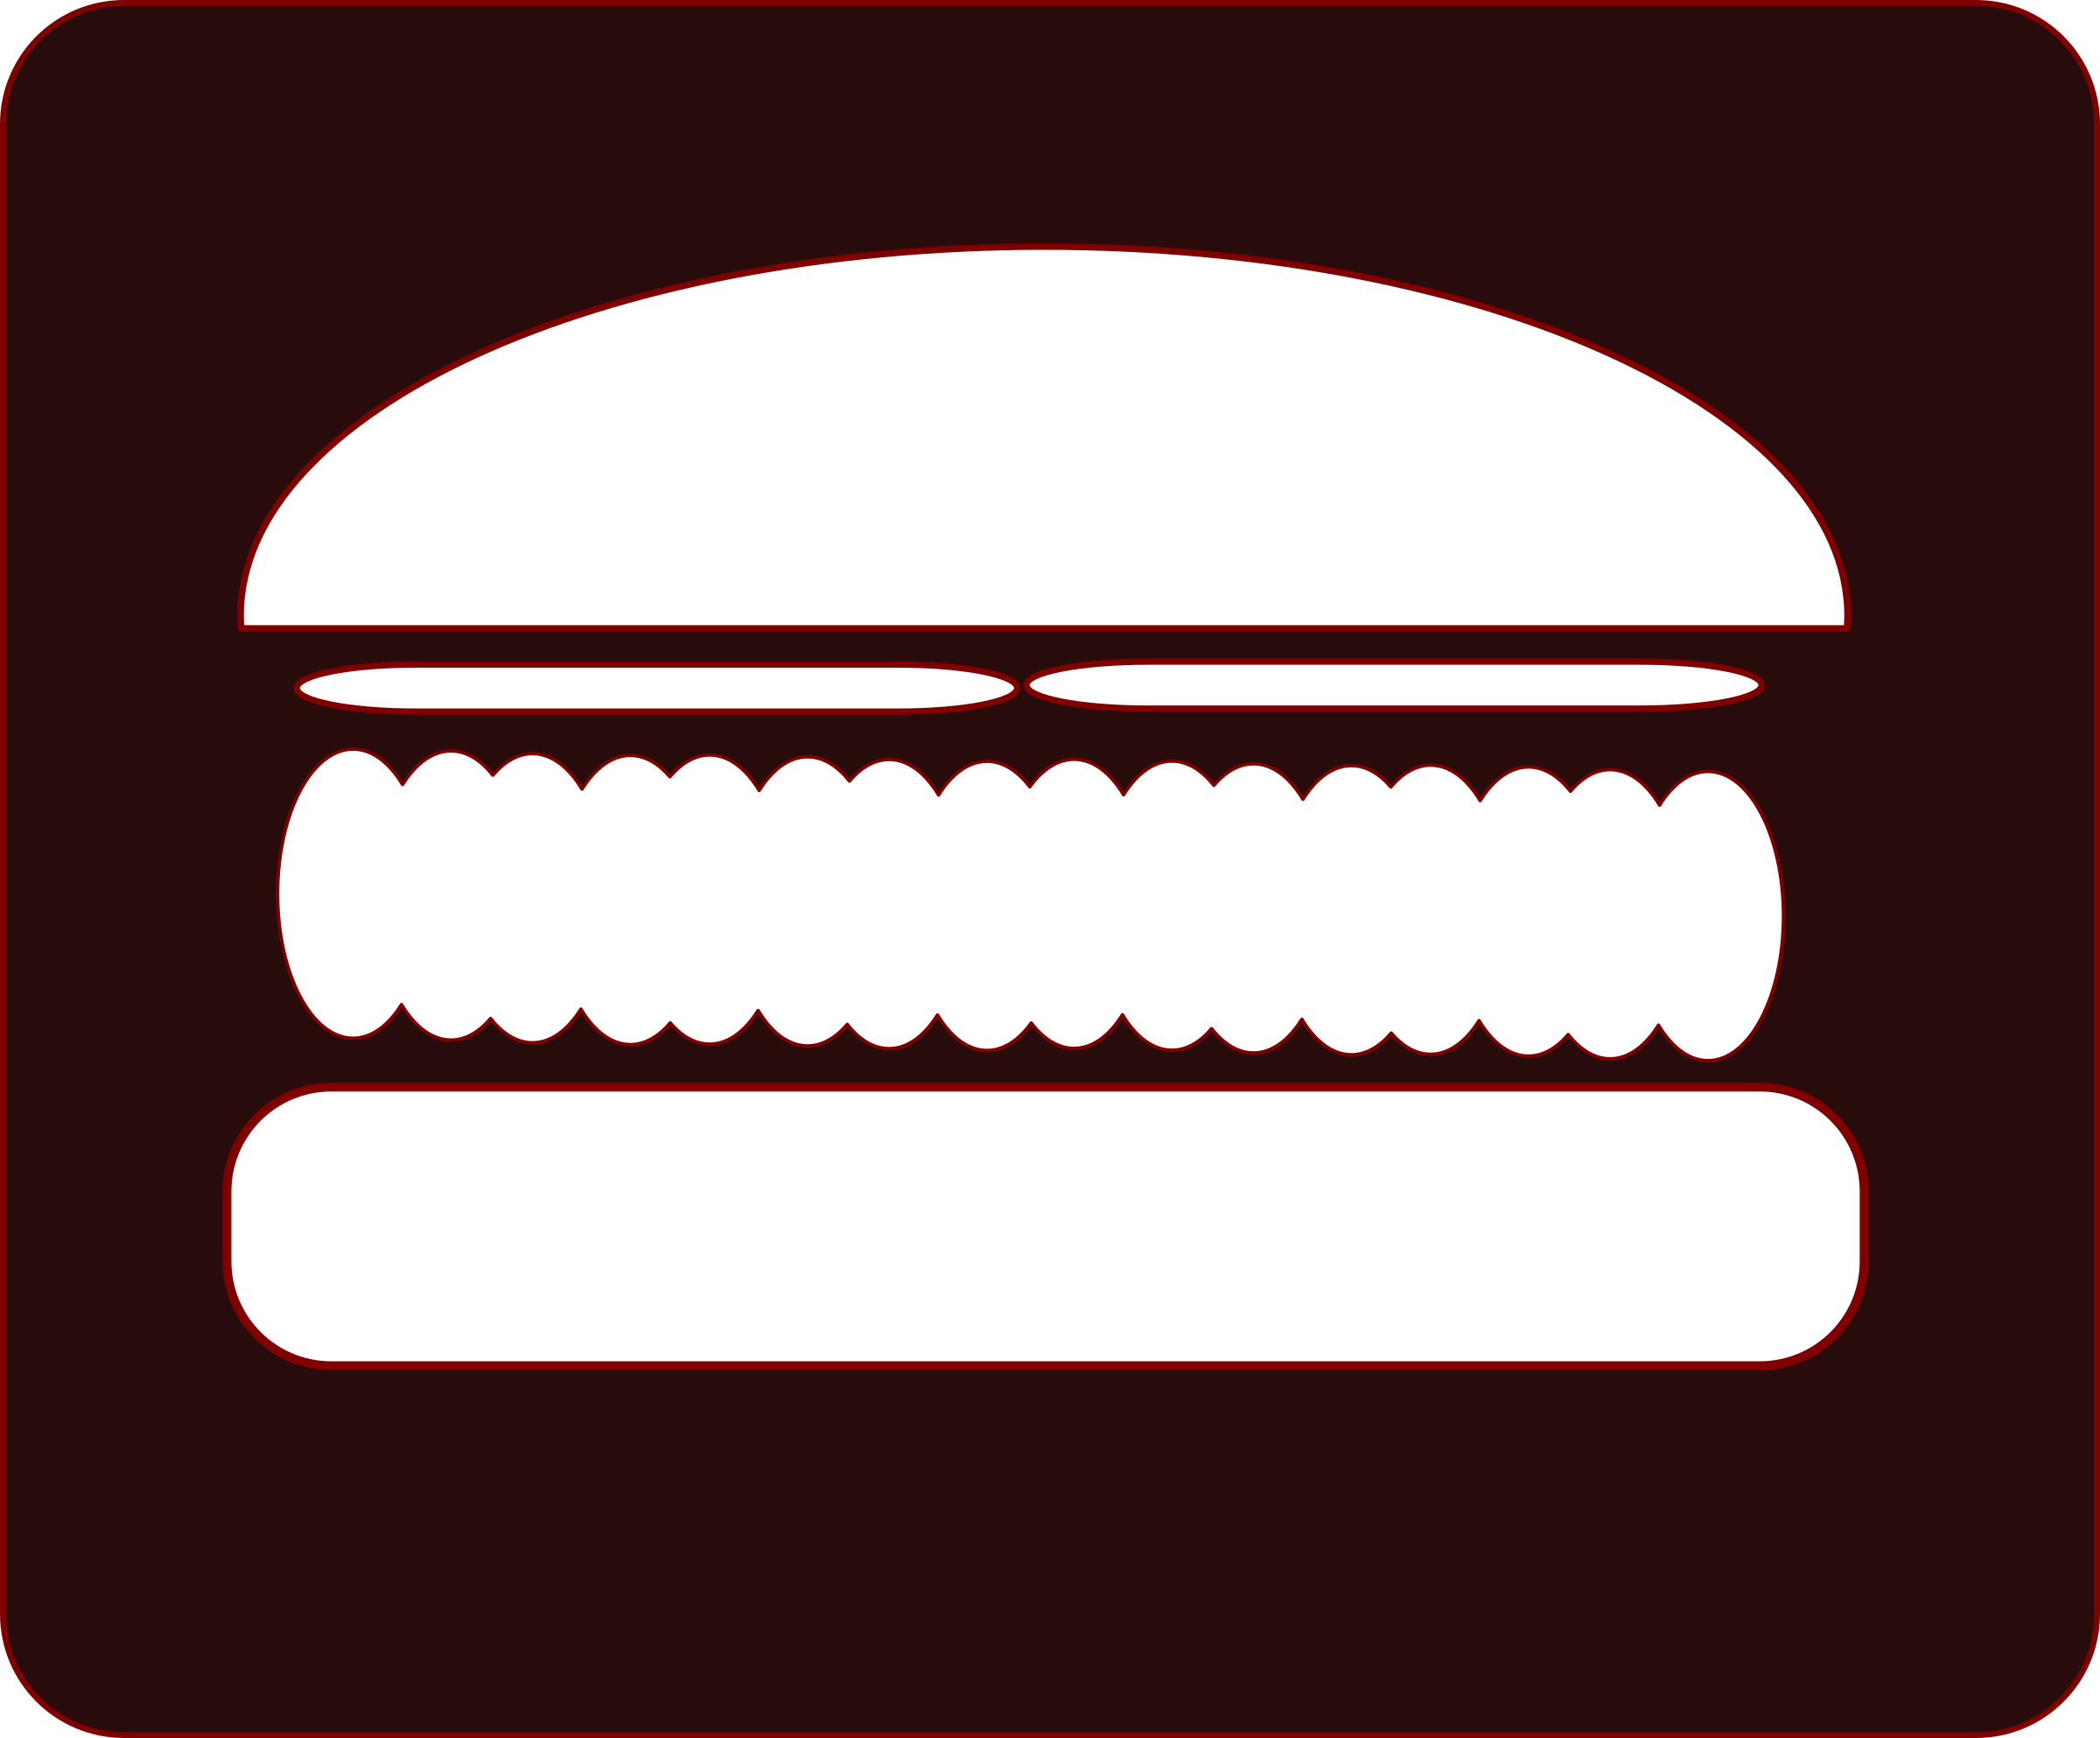 Hamburger Icon by FunDraw_dot_com